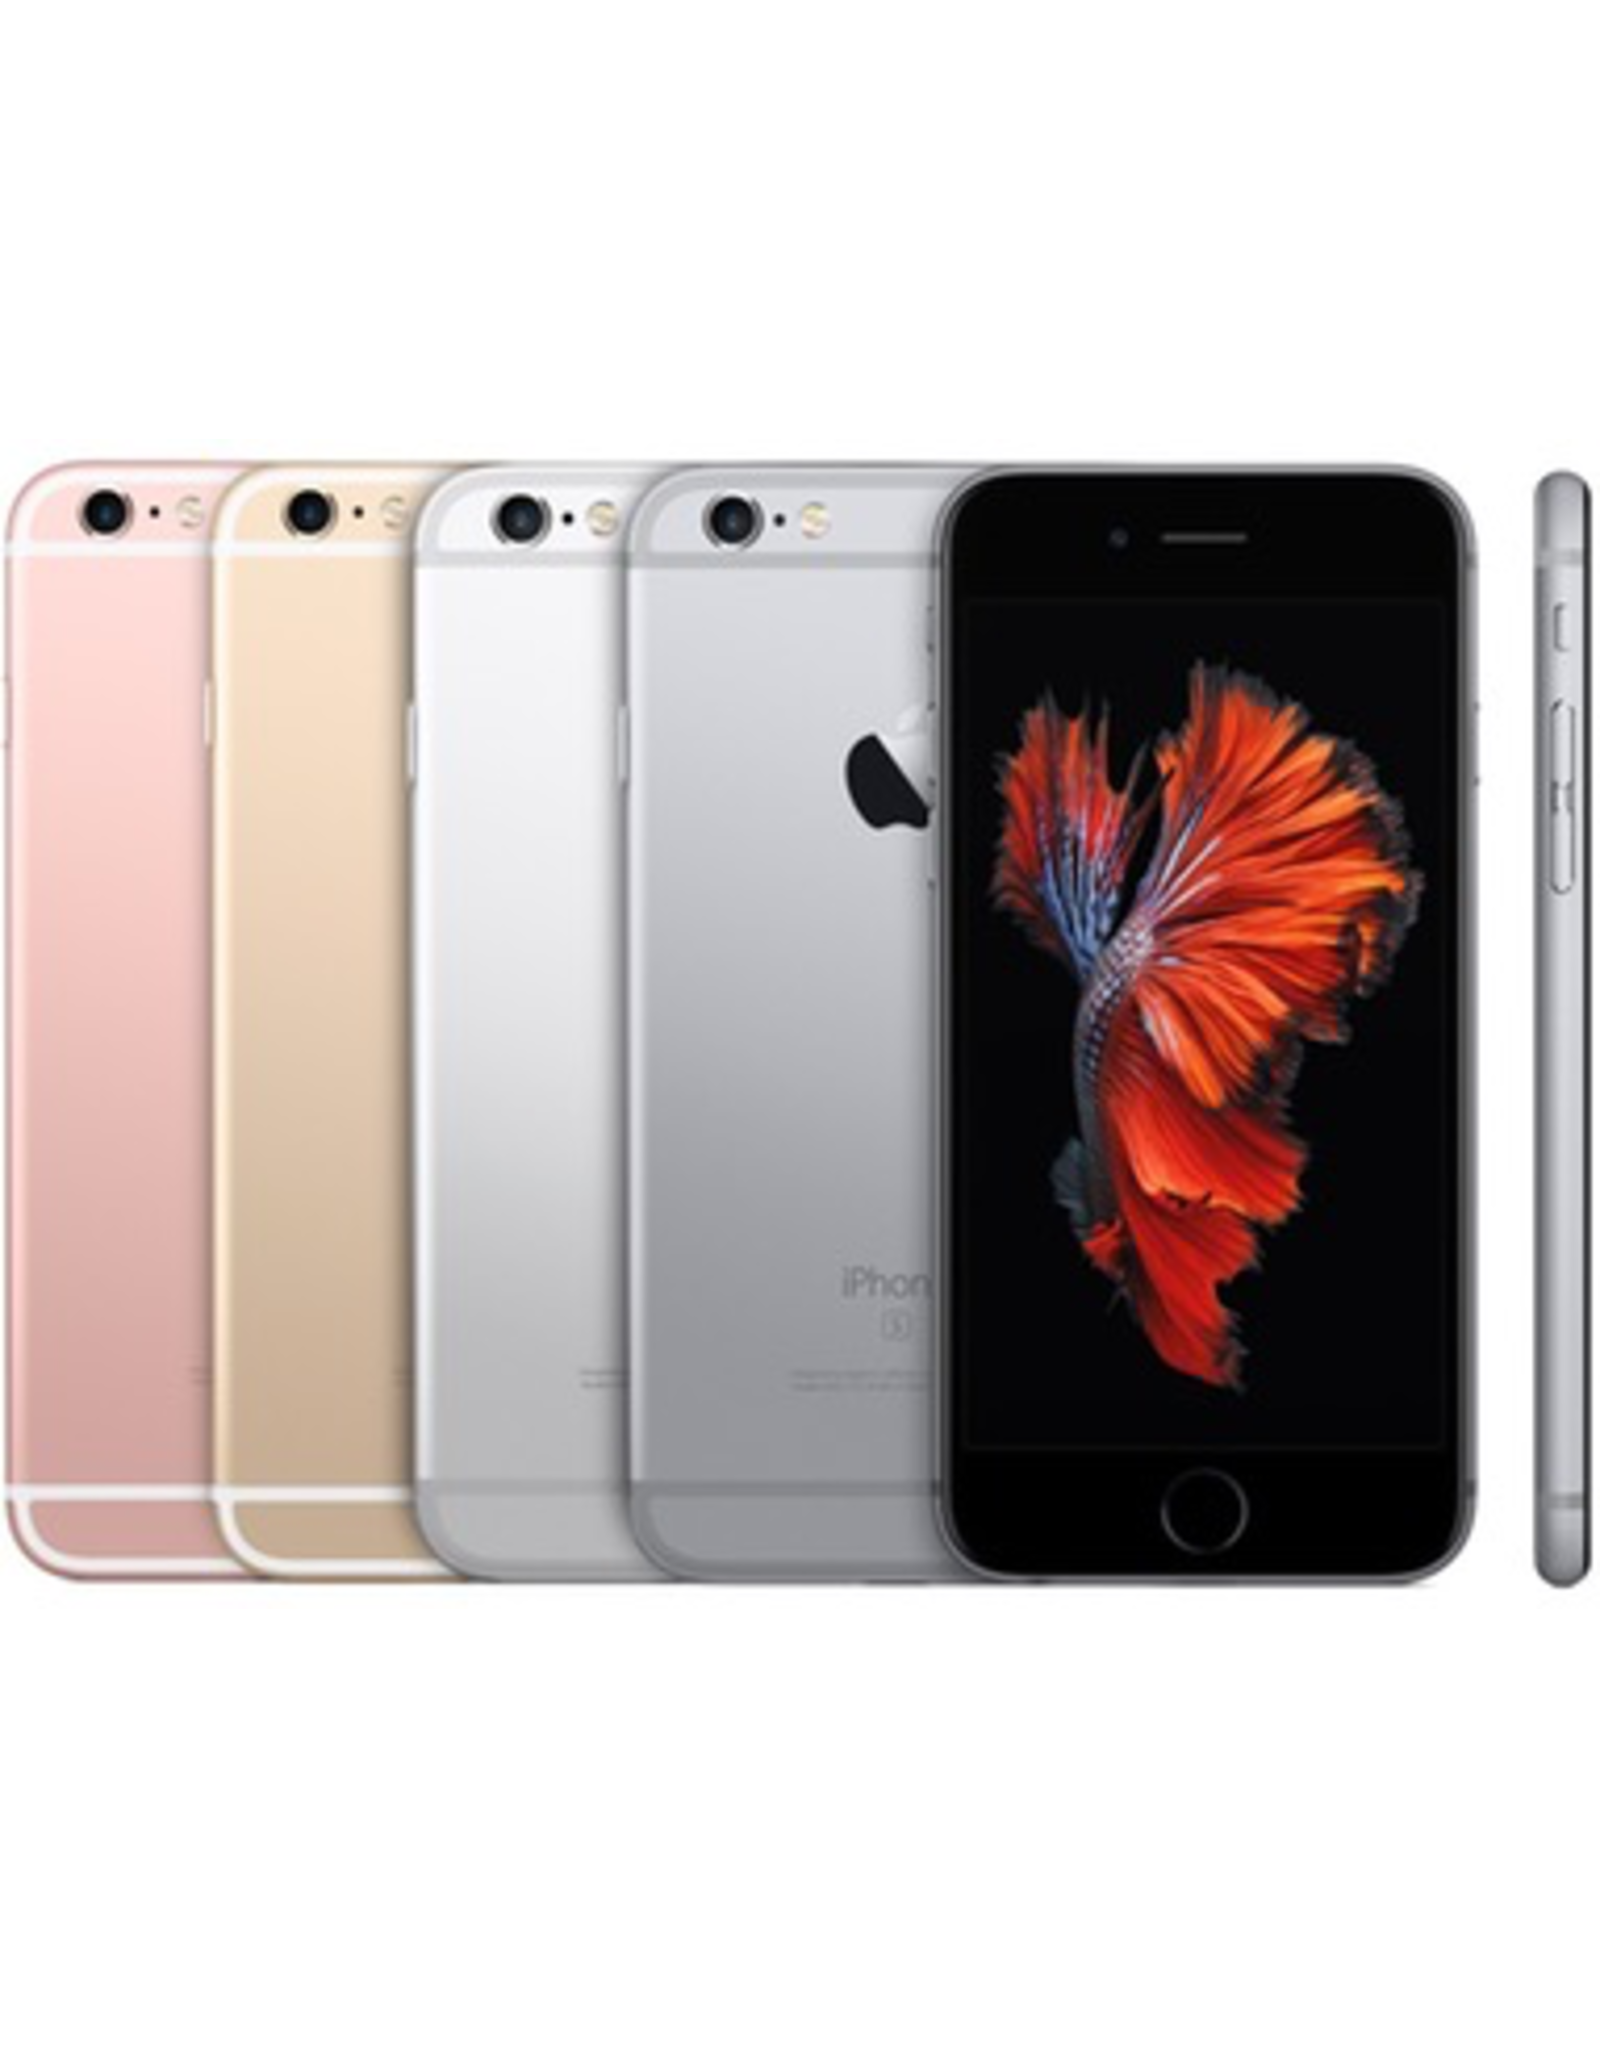 Apple iPhone 6s (16GB Rose Gold) - 30 Day Exchange